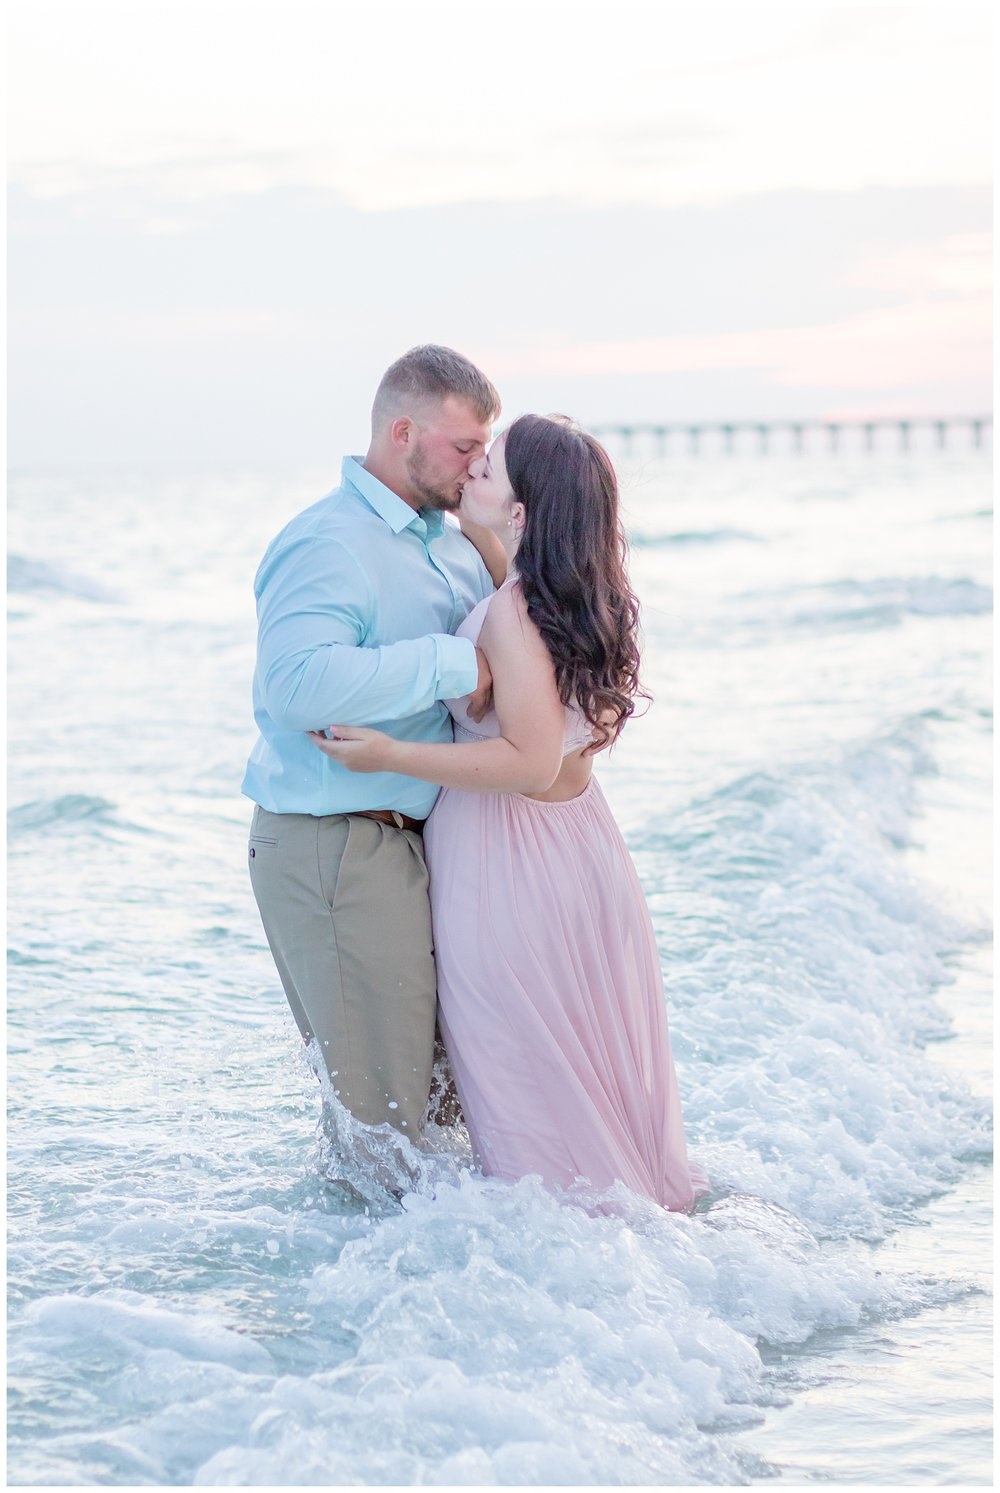 Beach proposal during couple session